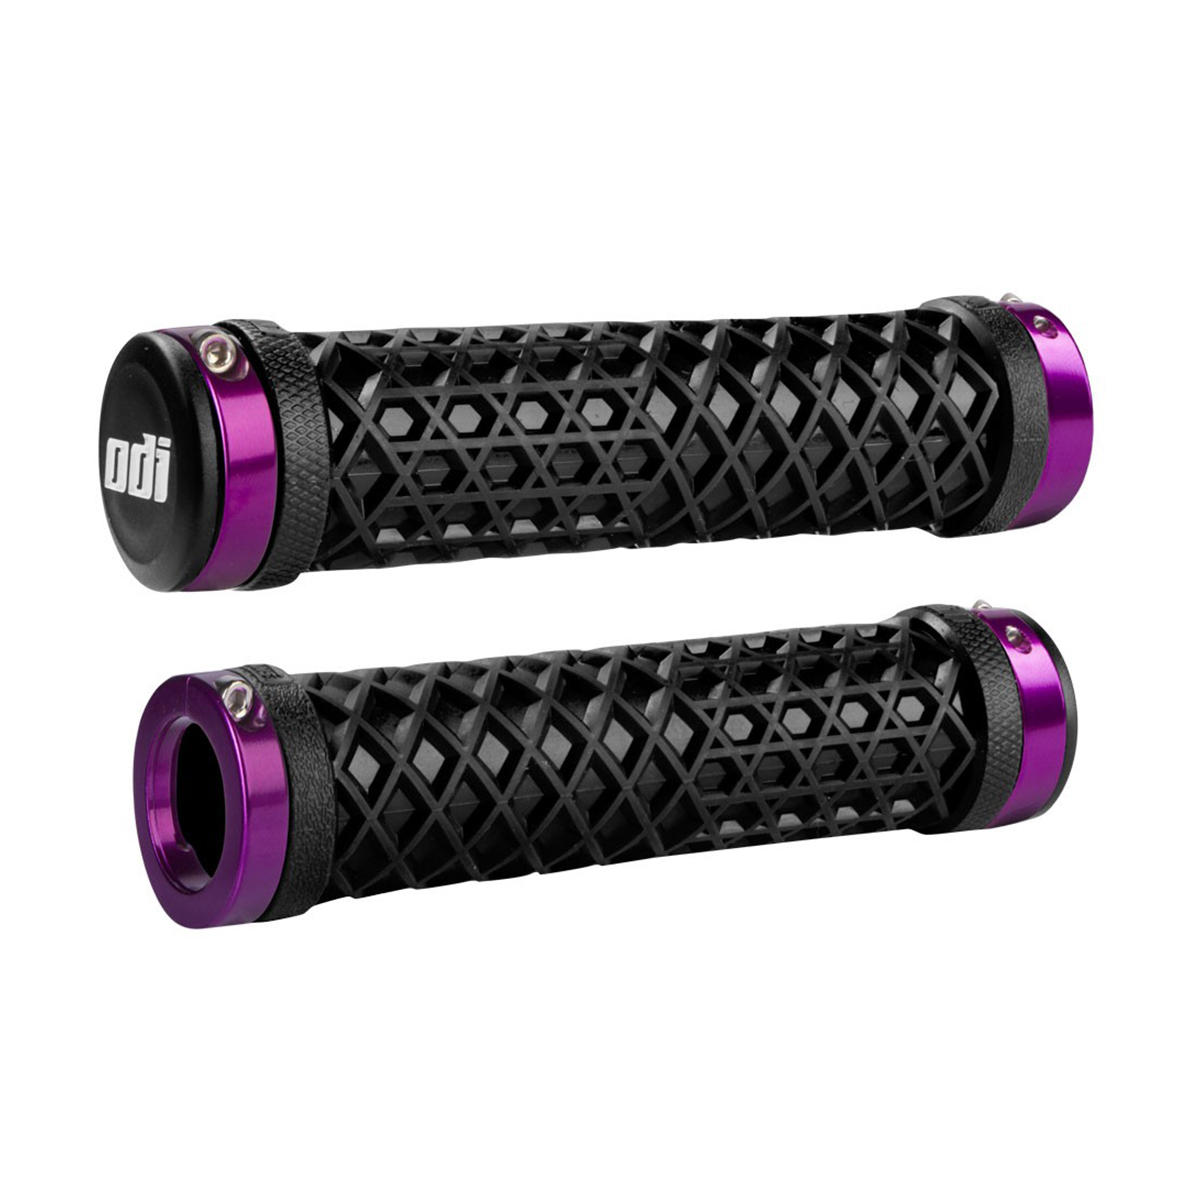 ODI VANS FLANGELESS LOCK-ON GRIPS